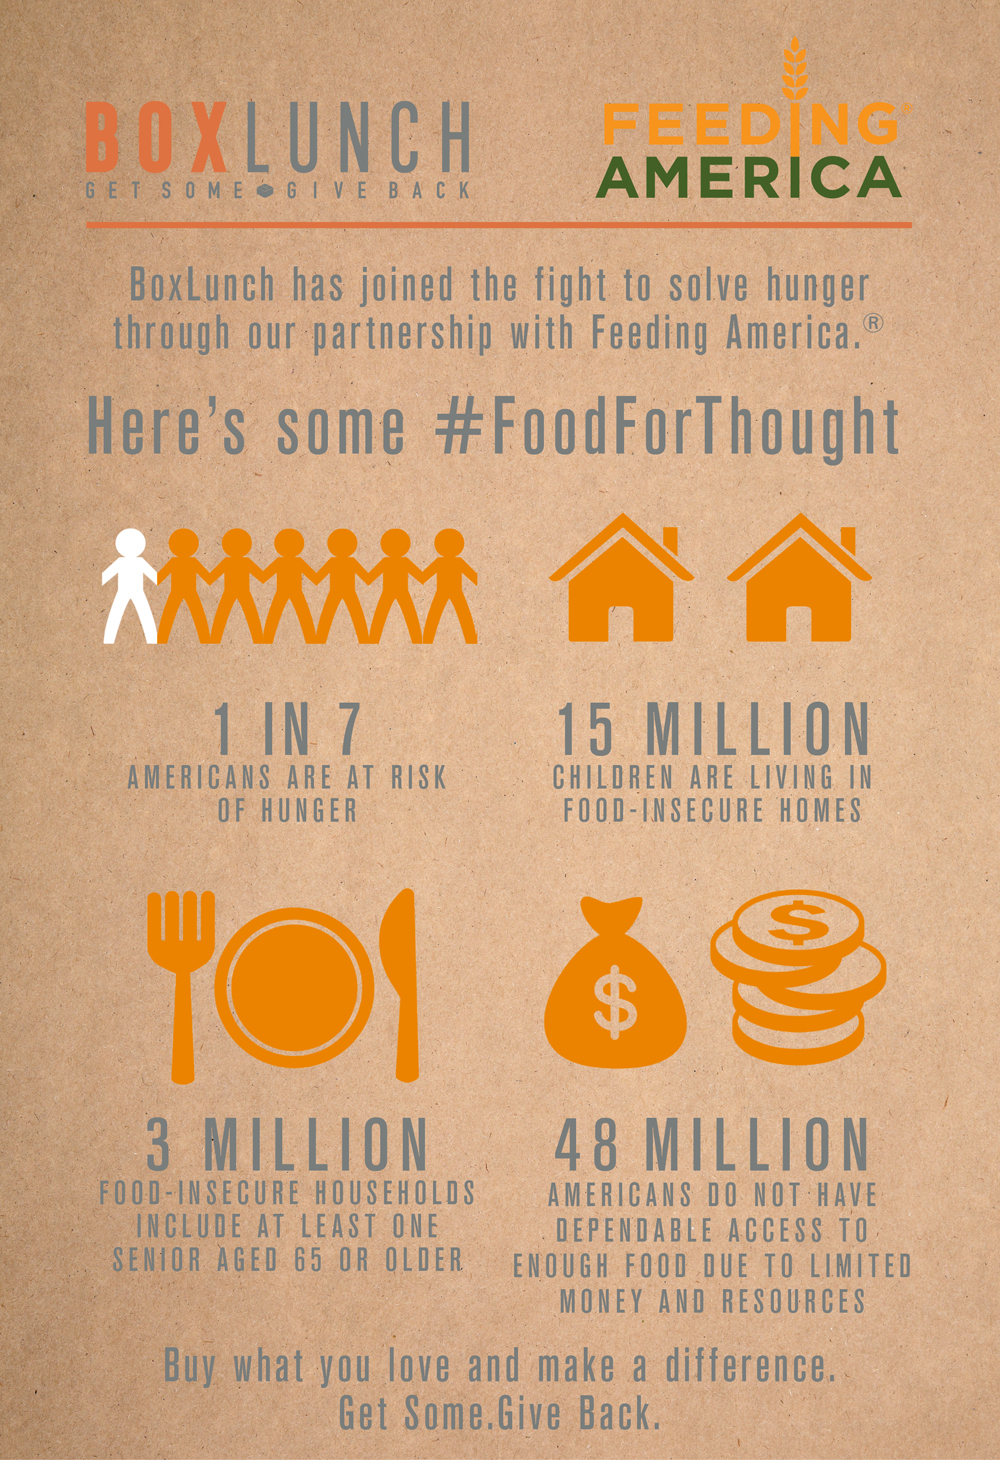 box lunch feeding america infographic